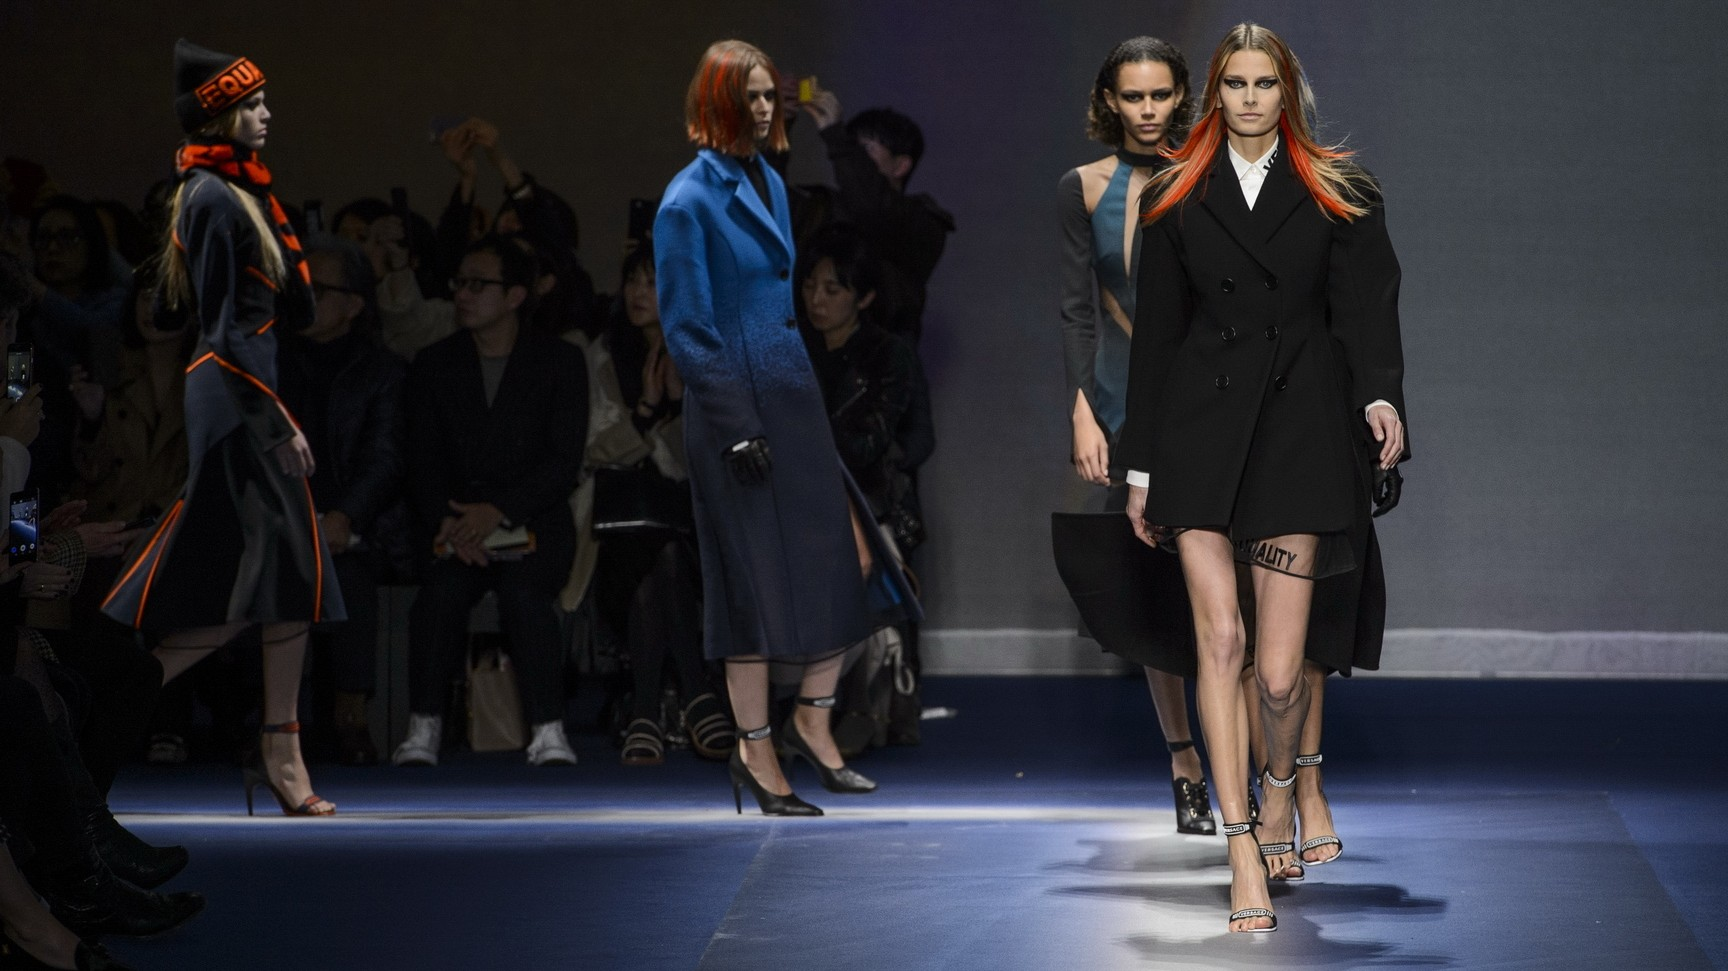 suffragette city: versace, emporio armani and diesel unite in milan